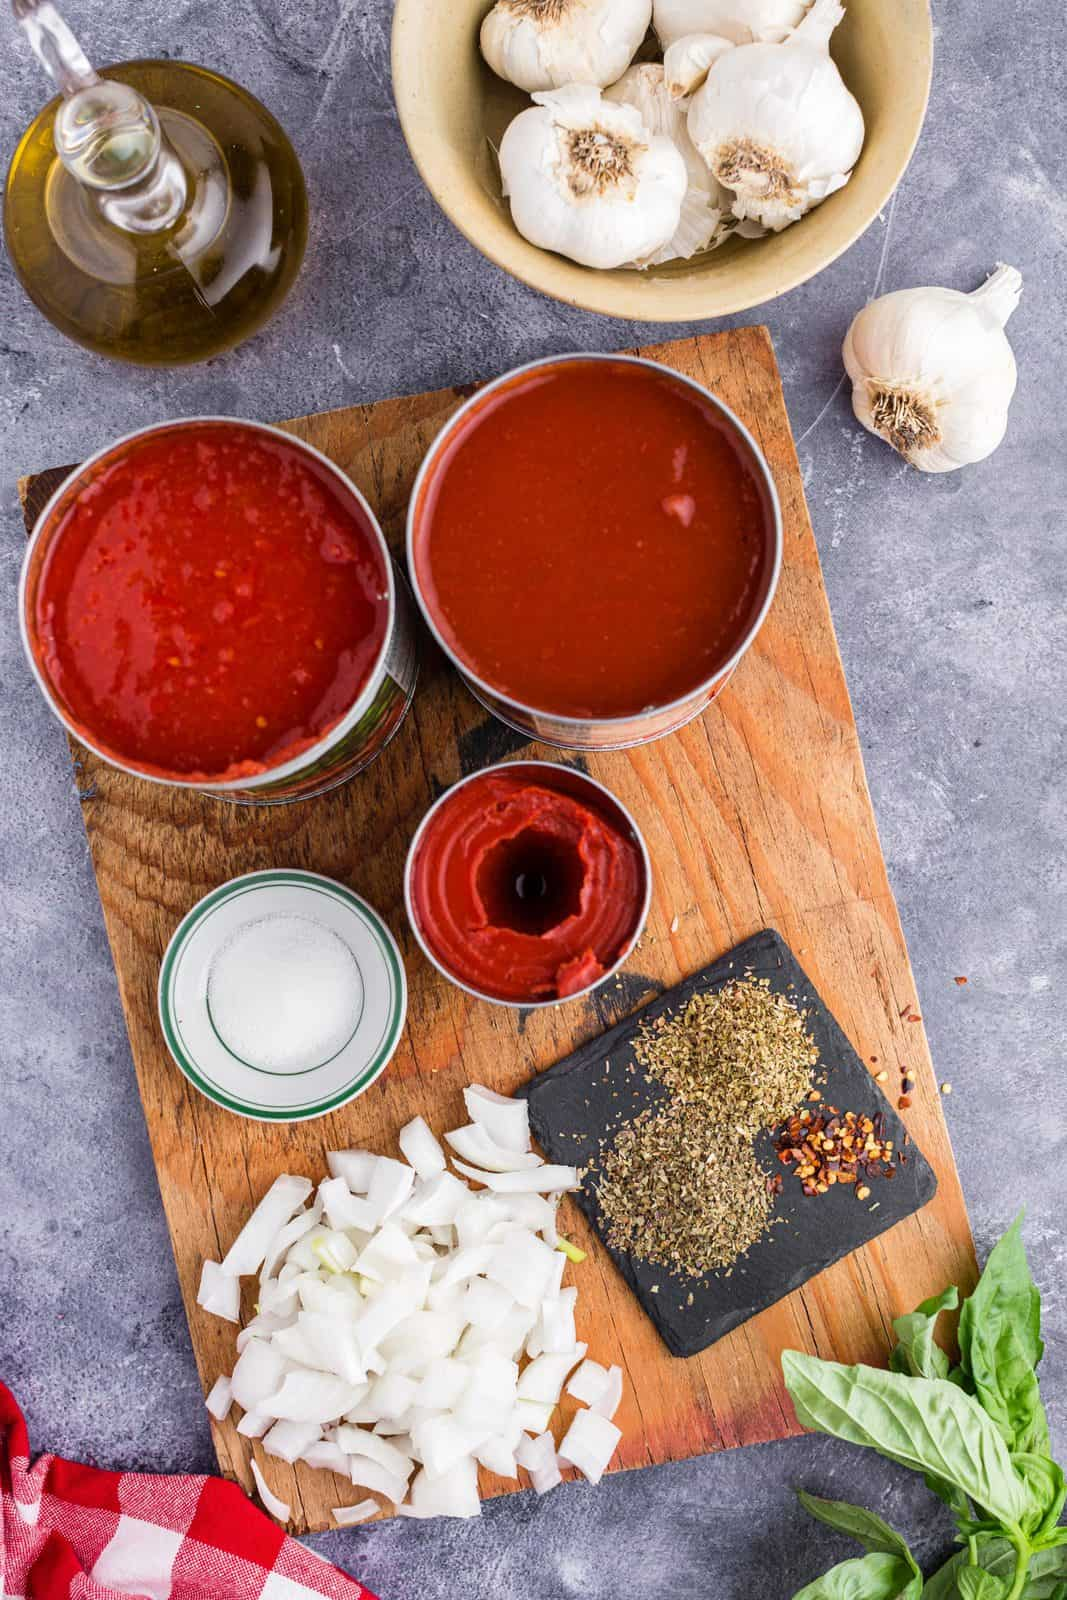 Ingredients needed: olive oil, yellow onion, garlic, dried basil, dried oregano, crushed red pepper flakes, tomato paste, tomato sauce, crushed tomatoes, granulated sugar, and parmesan cheese.